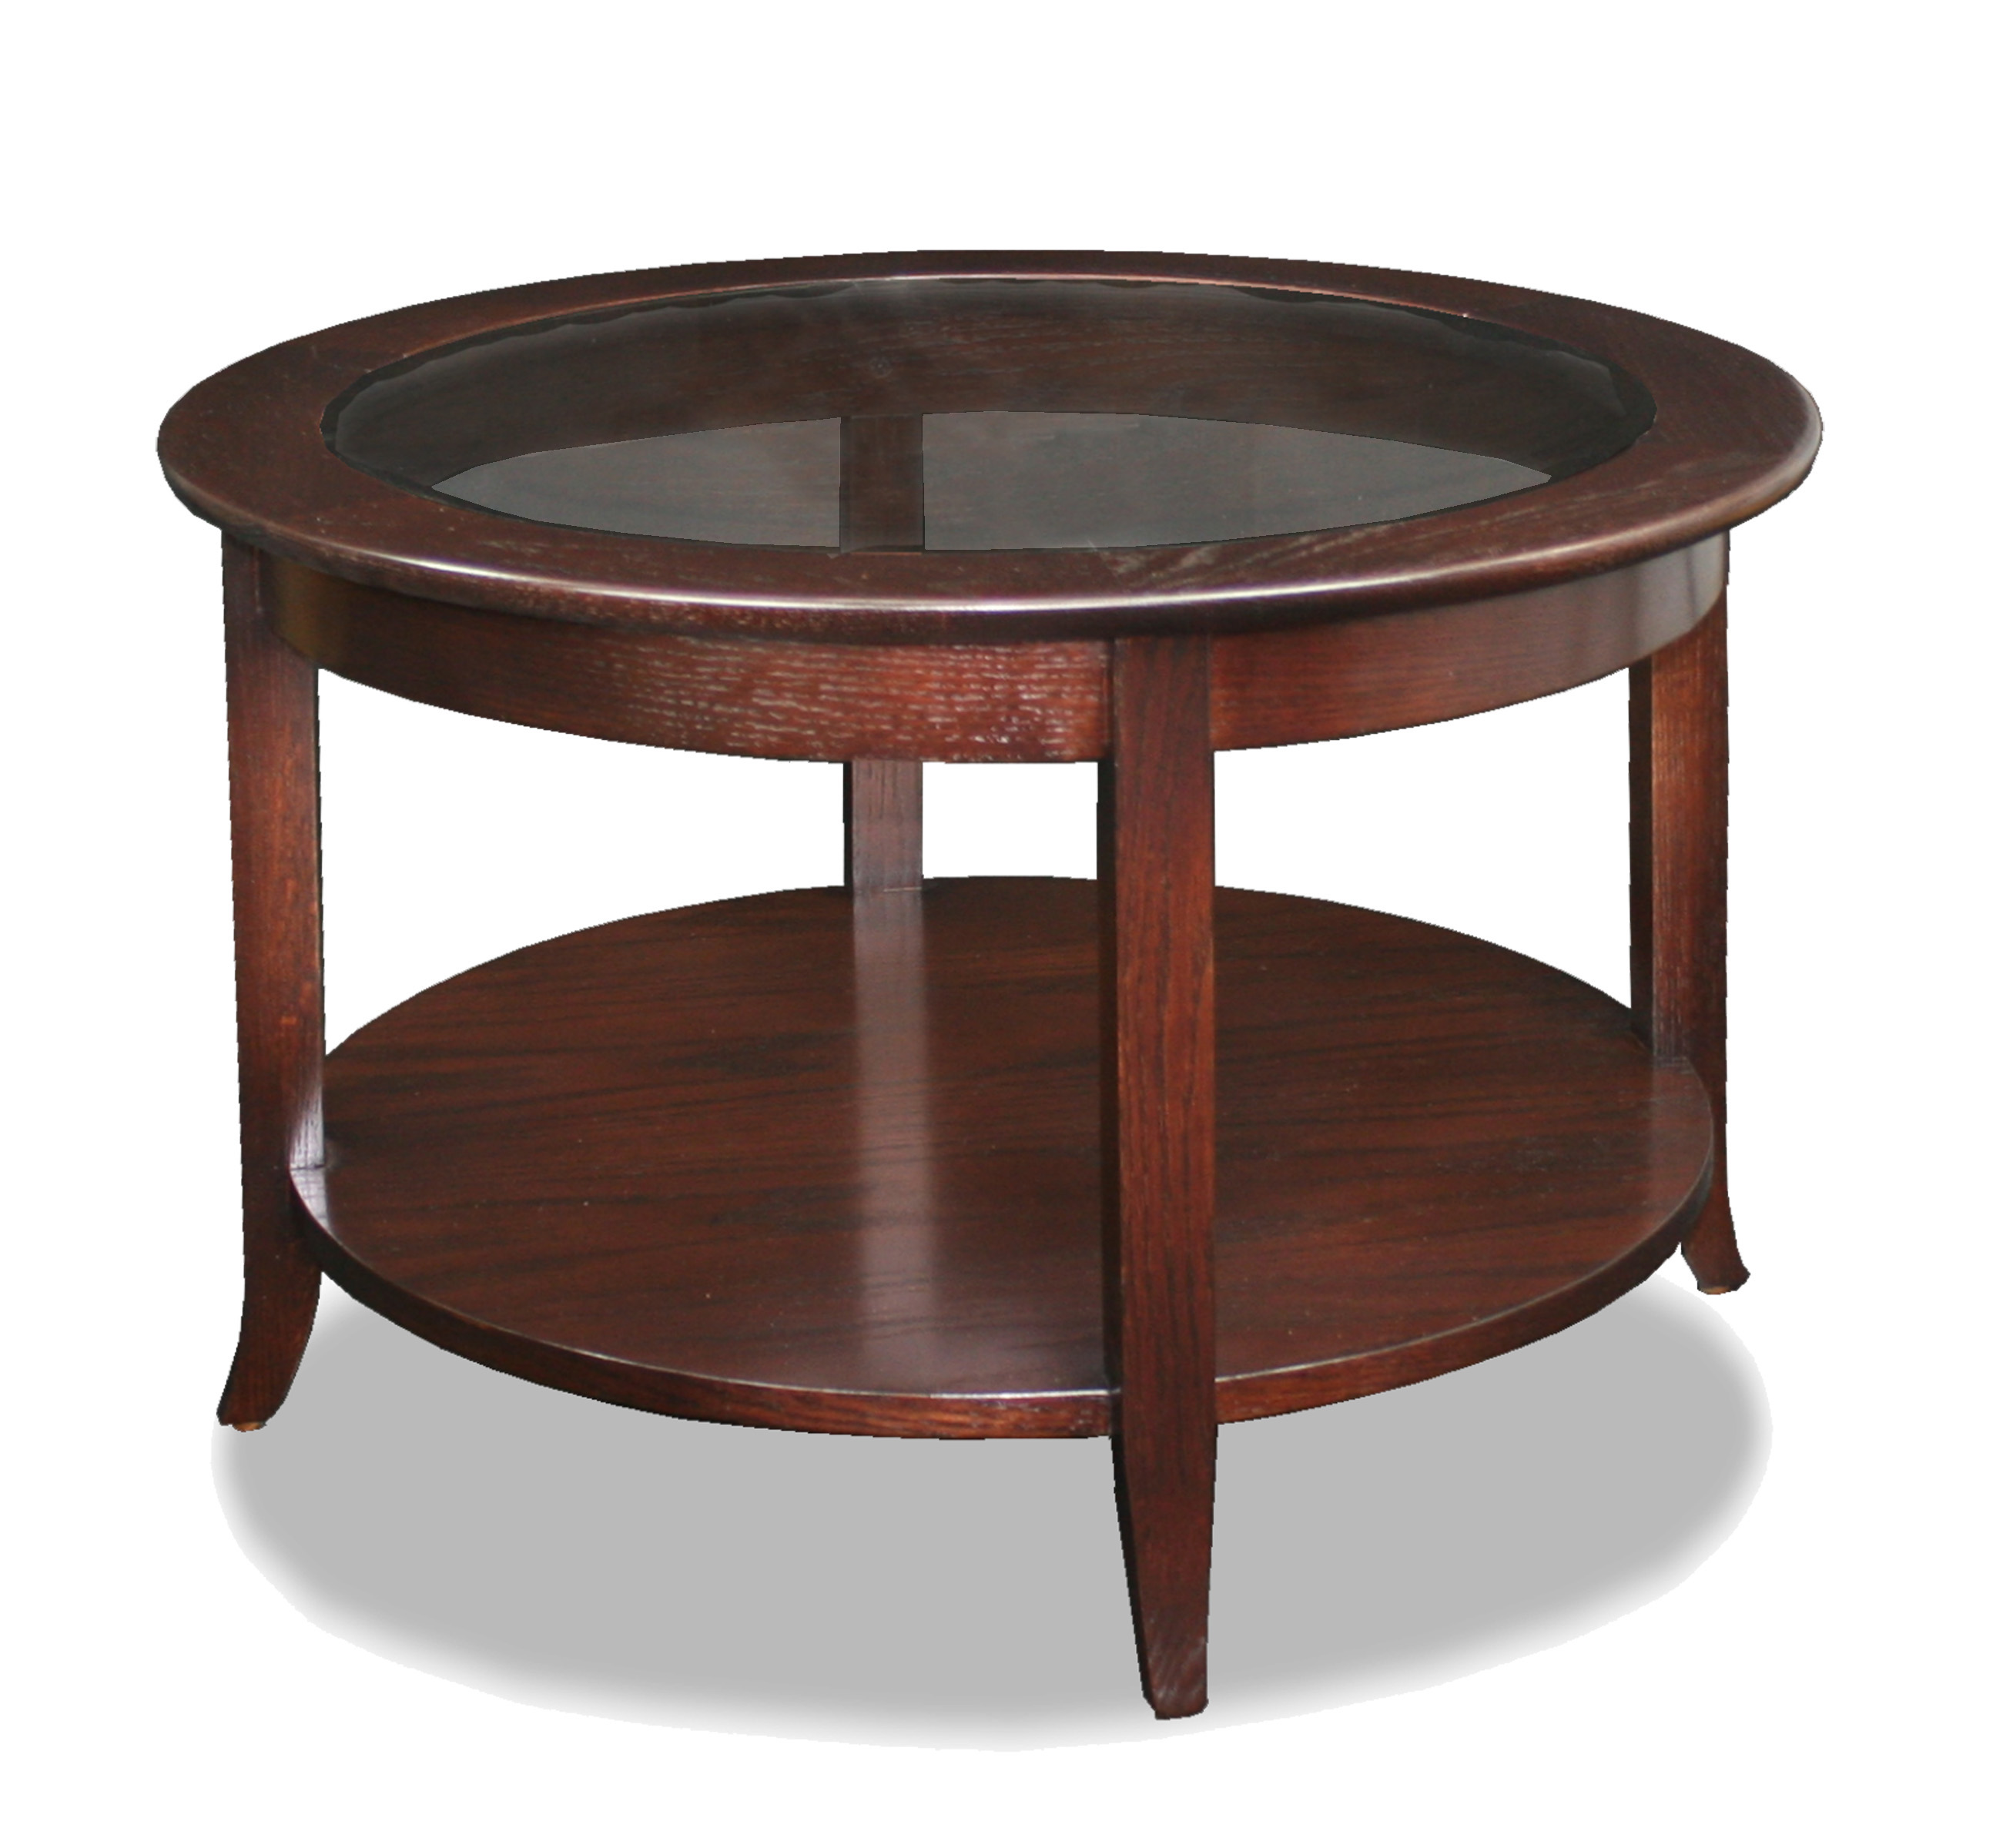 Fascinating round wood coffee table for home coffee bar for Living coffee table